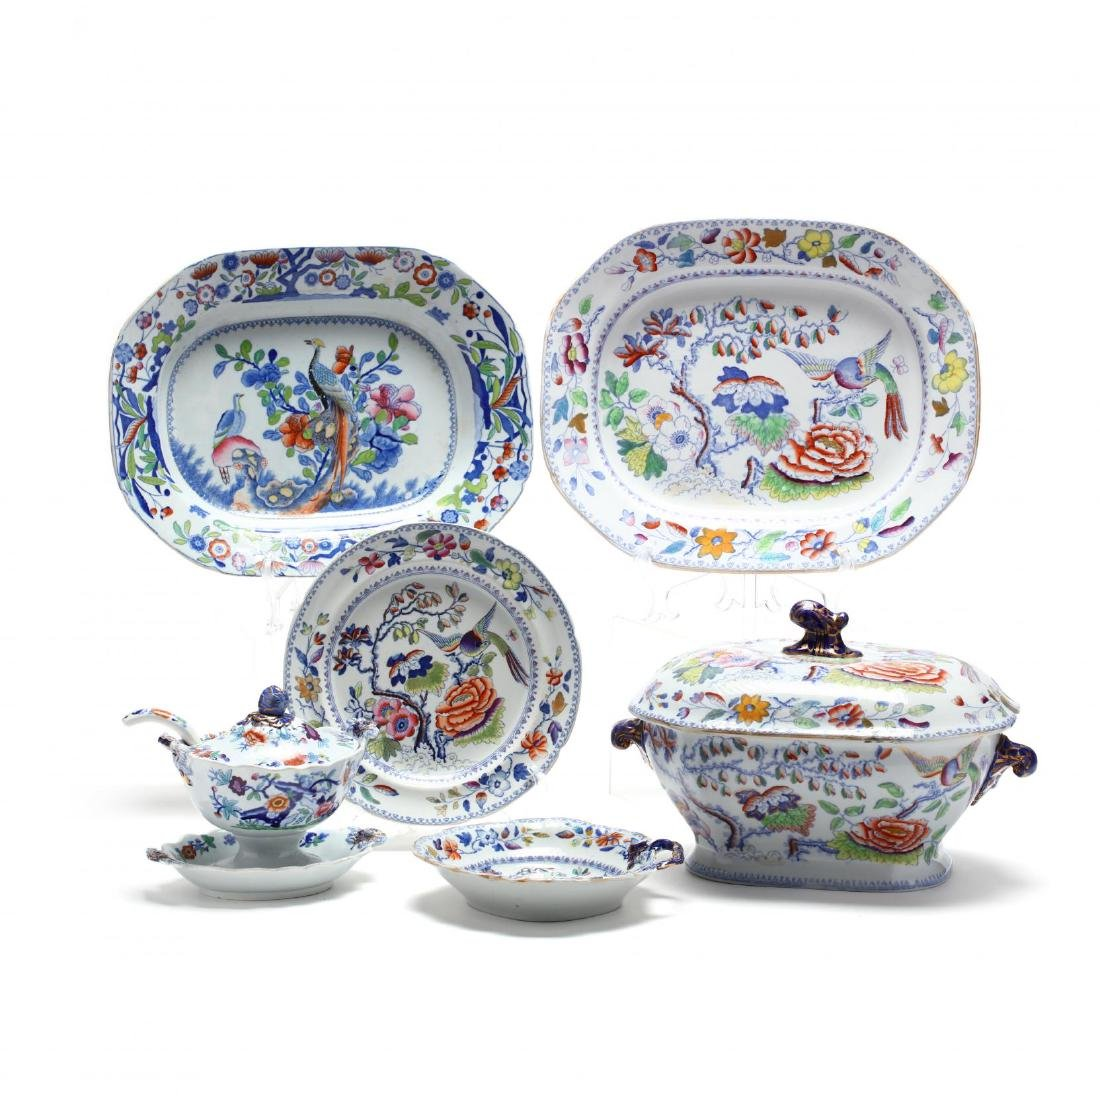 19th Century Ironstone Group incl. Mason's and